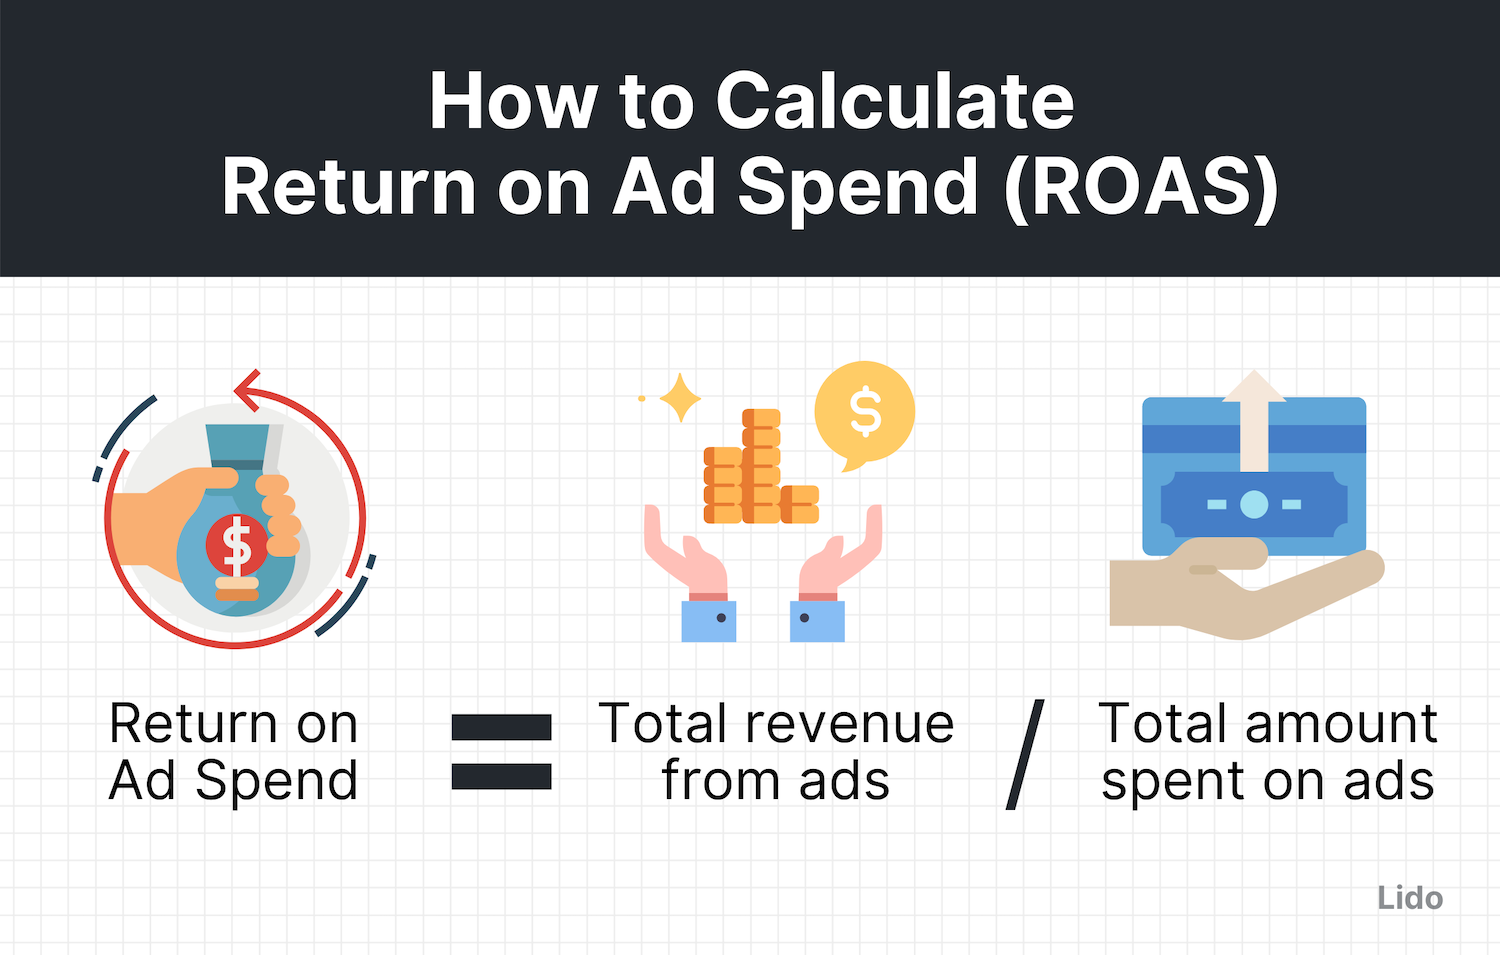 ROAS equation (= total revenue from ads / total ad spend ) with corresponding graphics